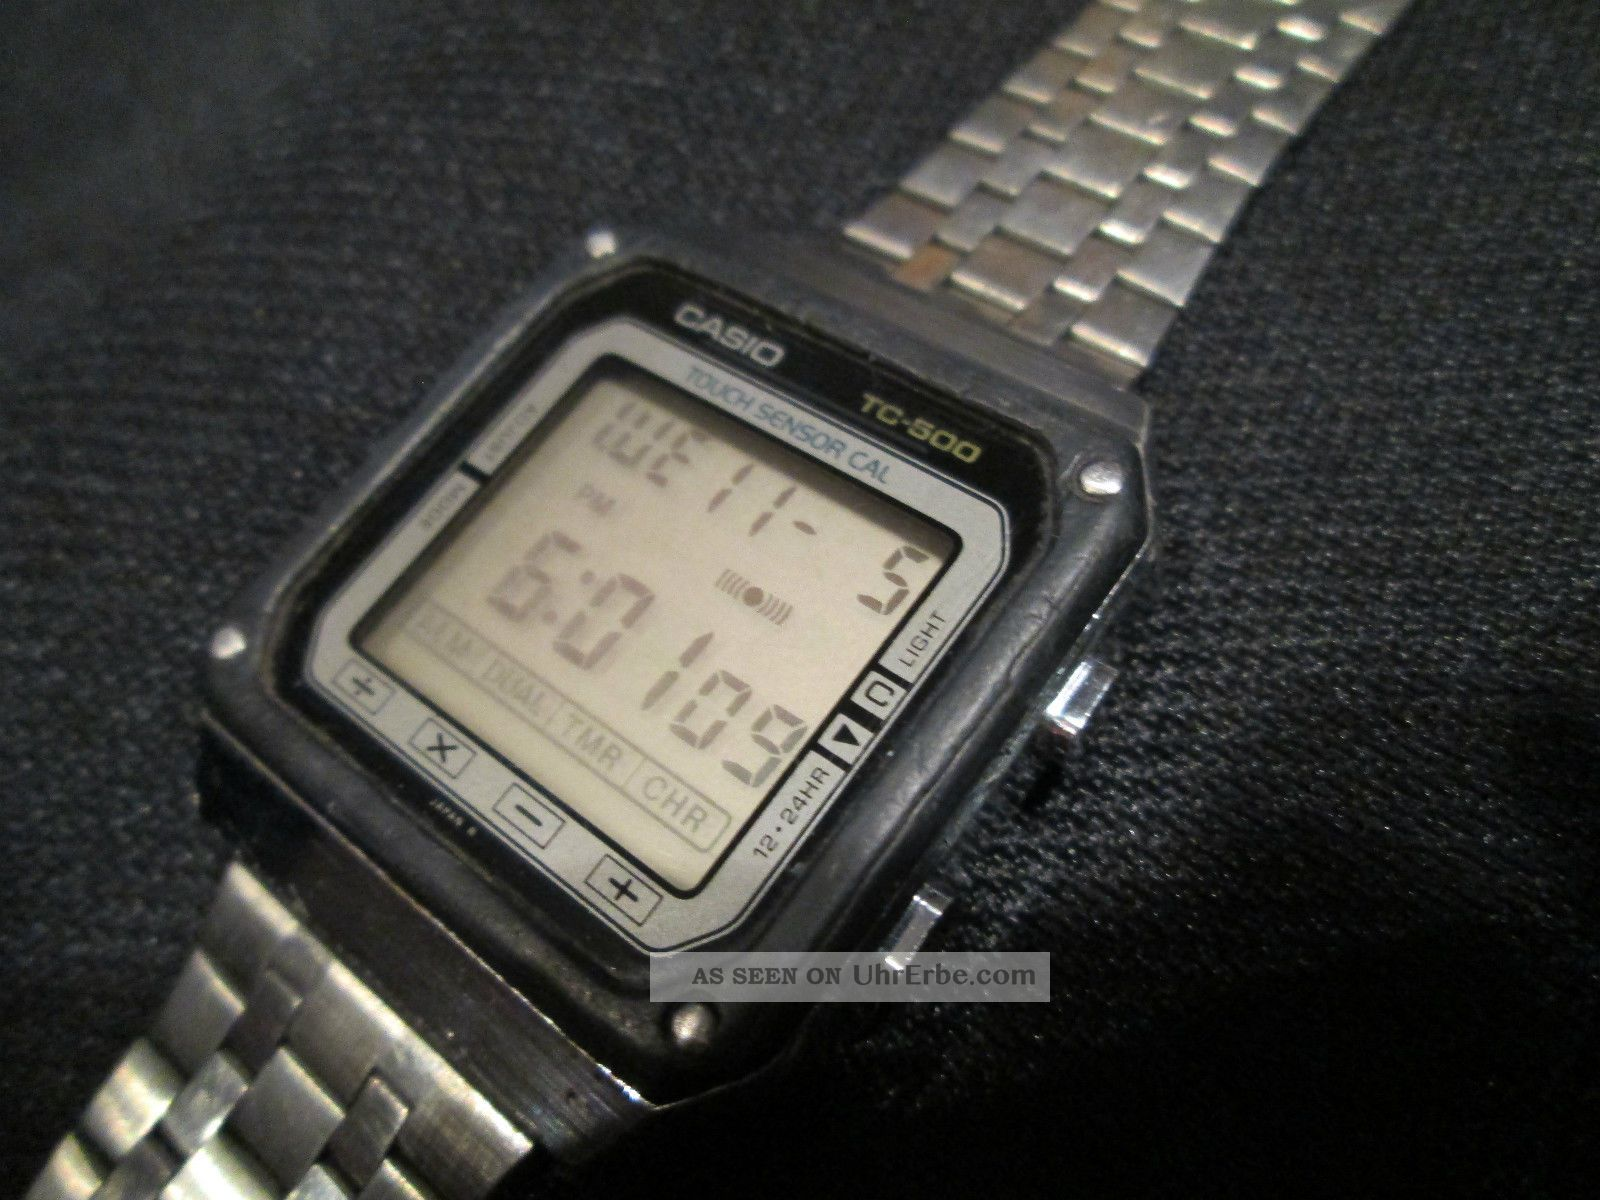 casio tc 500 lcd digital uhr armbanduhr vintage. Black Bedroom Furniture Sets. Home Design Ideas